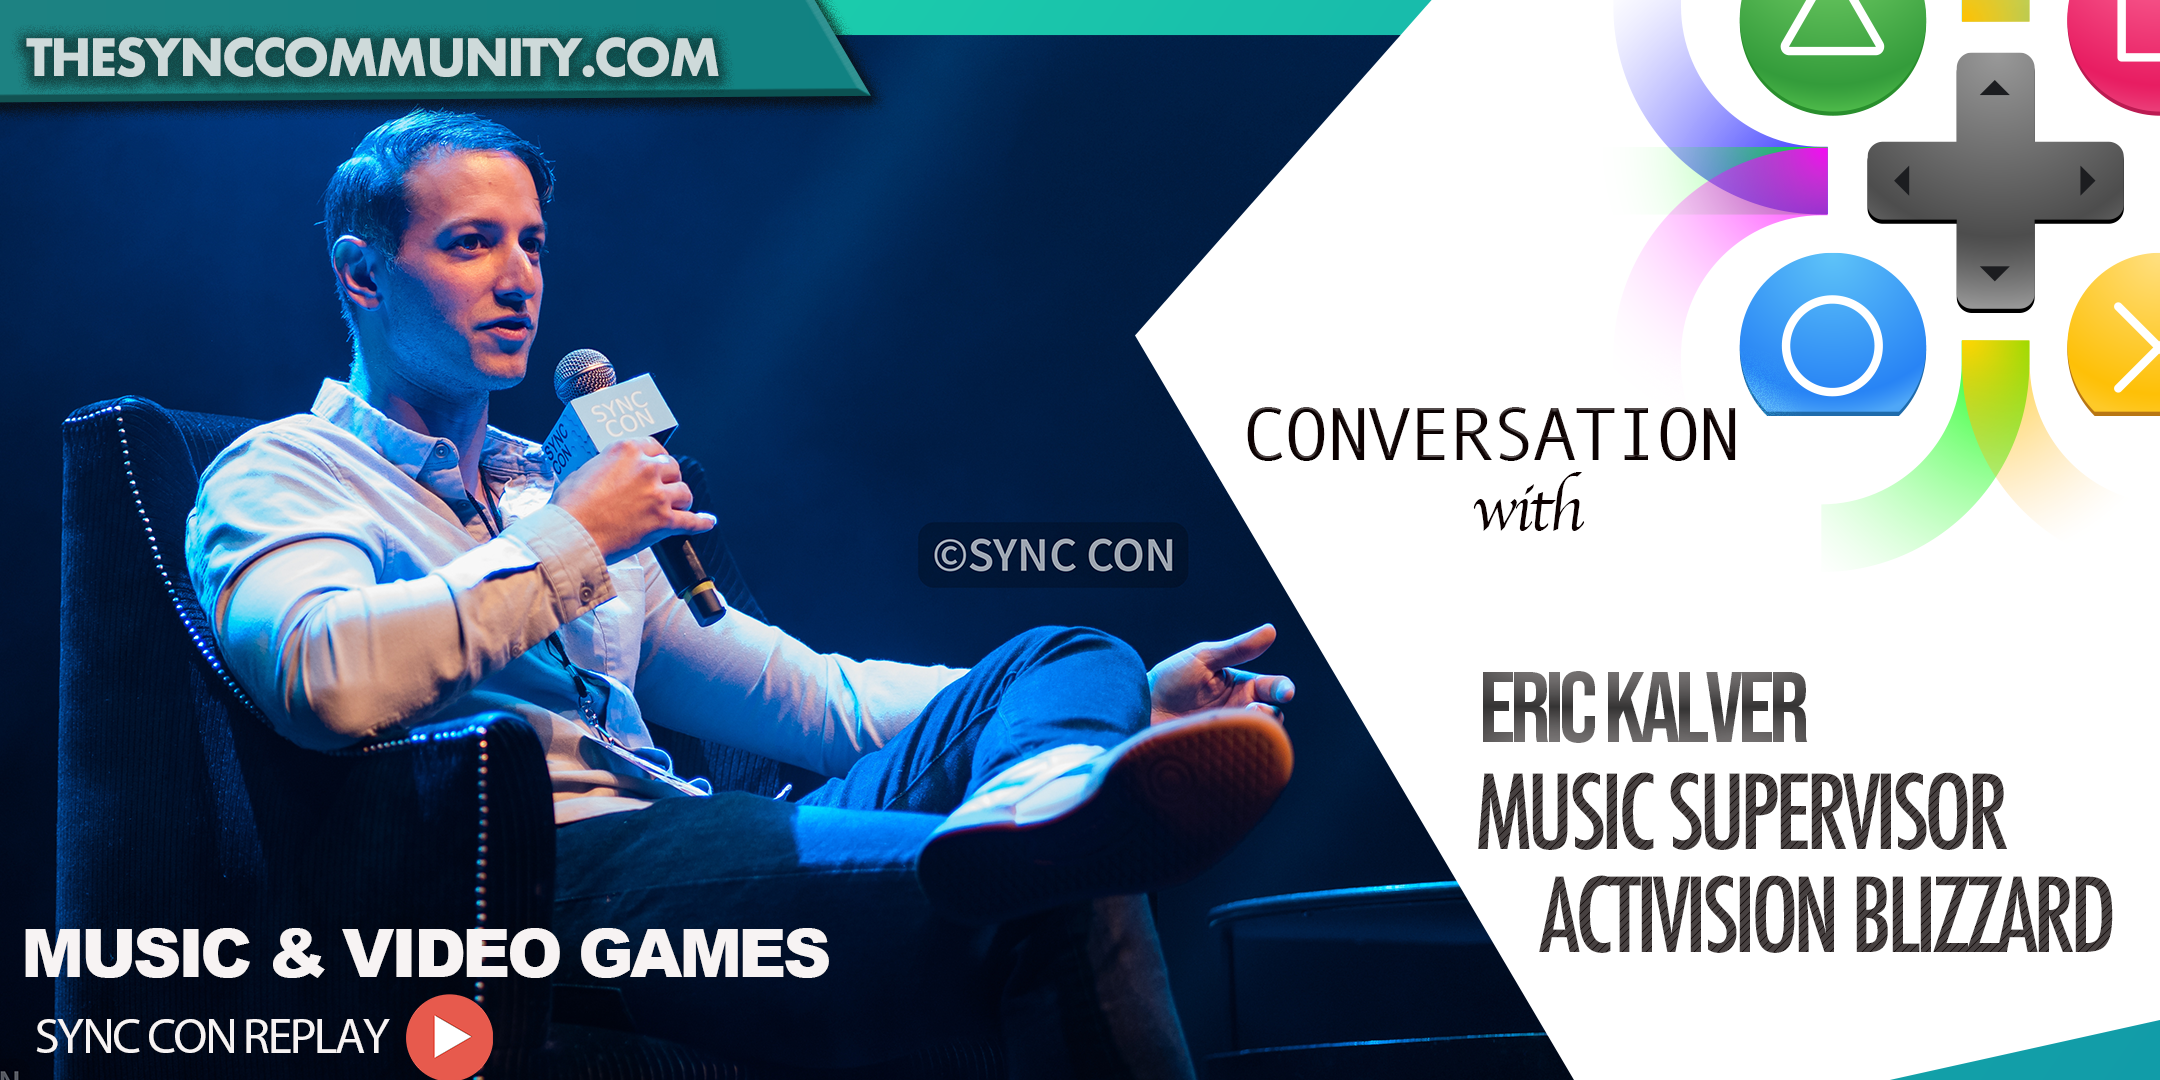 Music Use In Video Games with Eric Kalver: Music Supervisor for Activision Blizzard